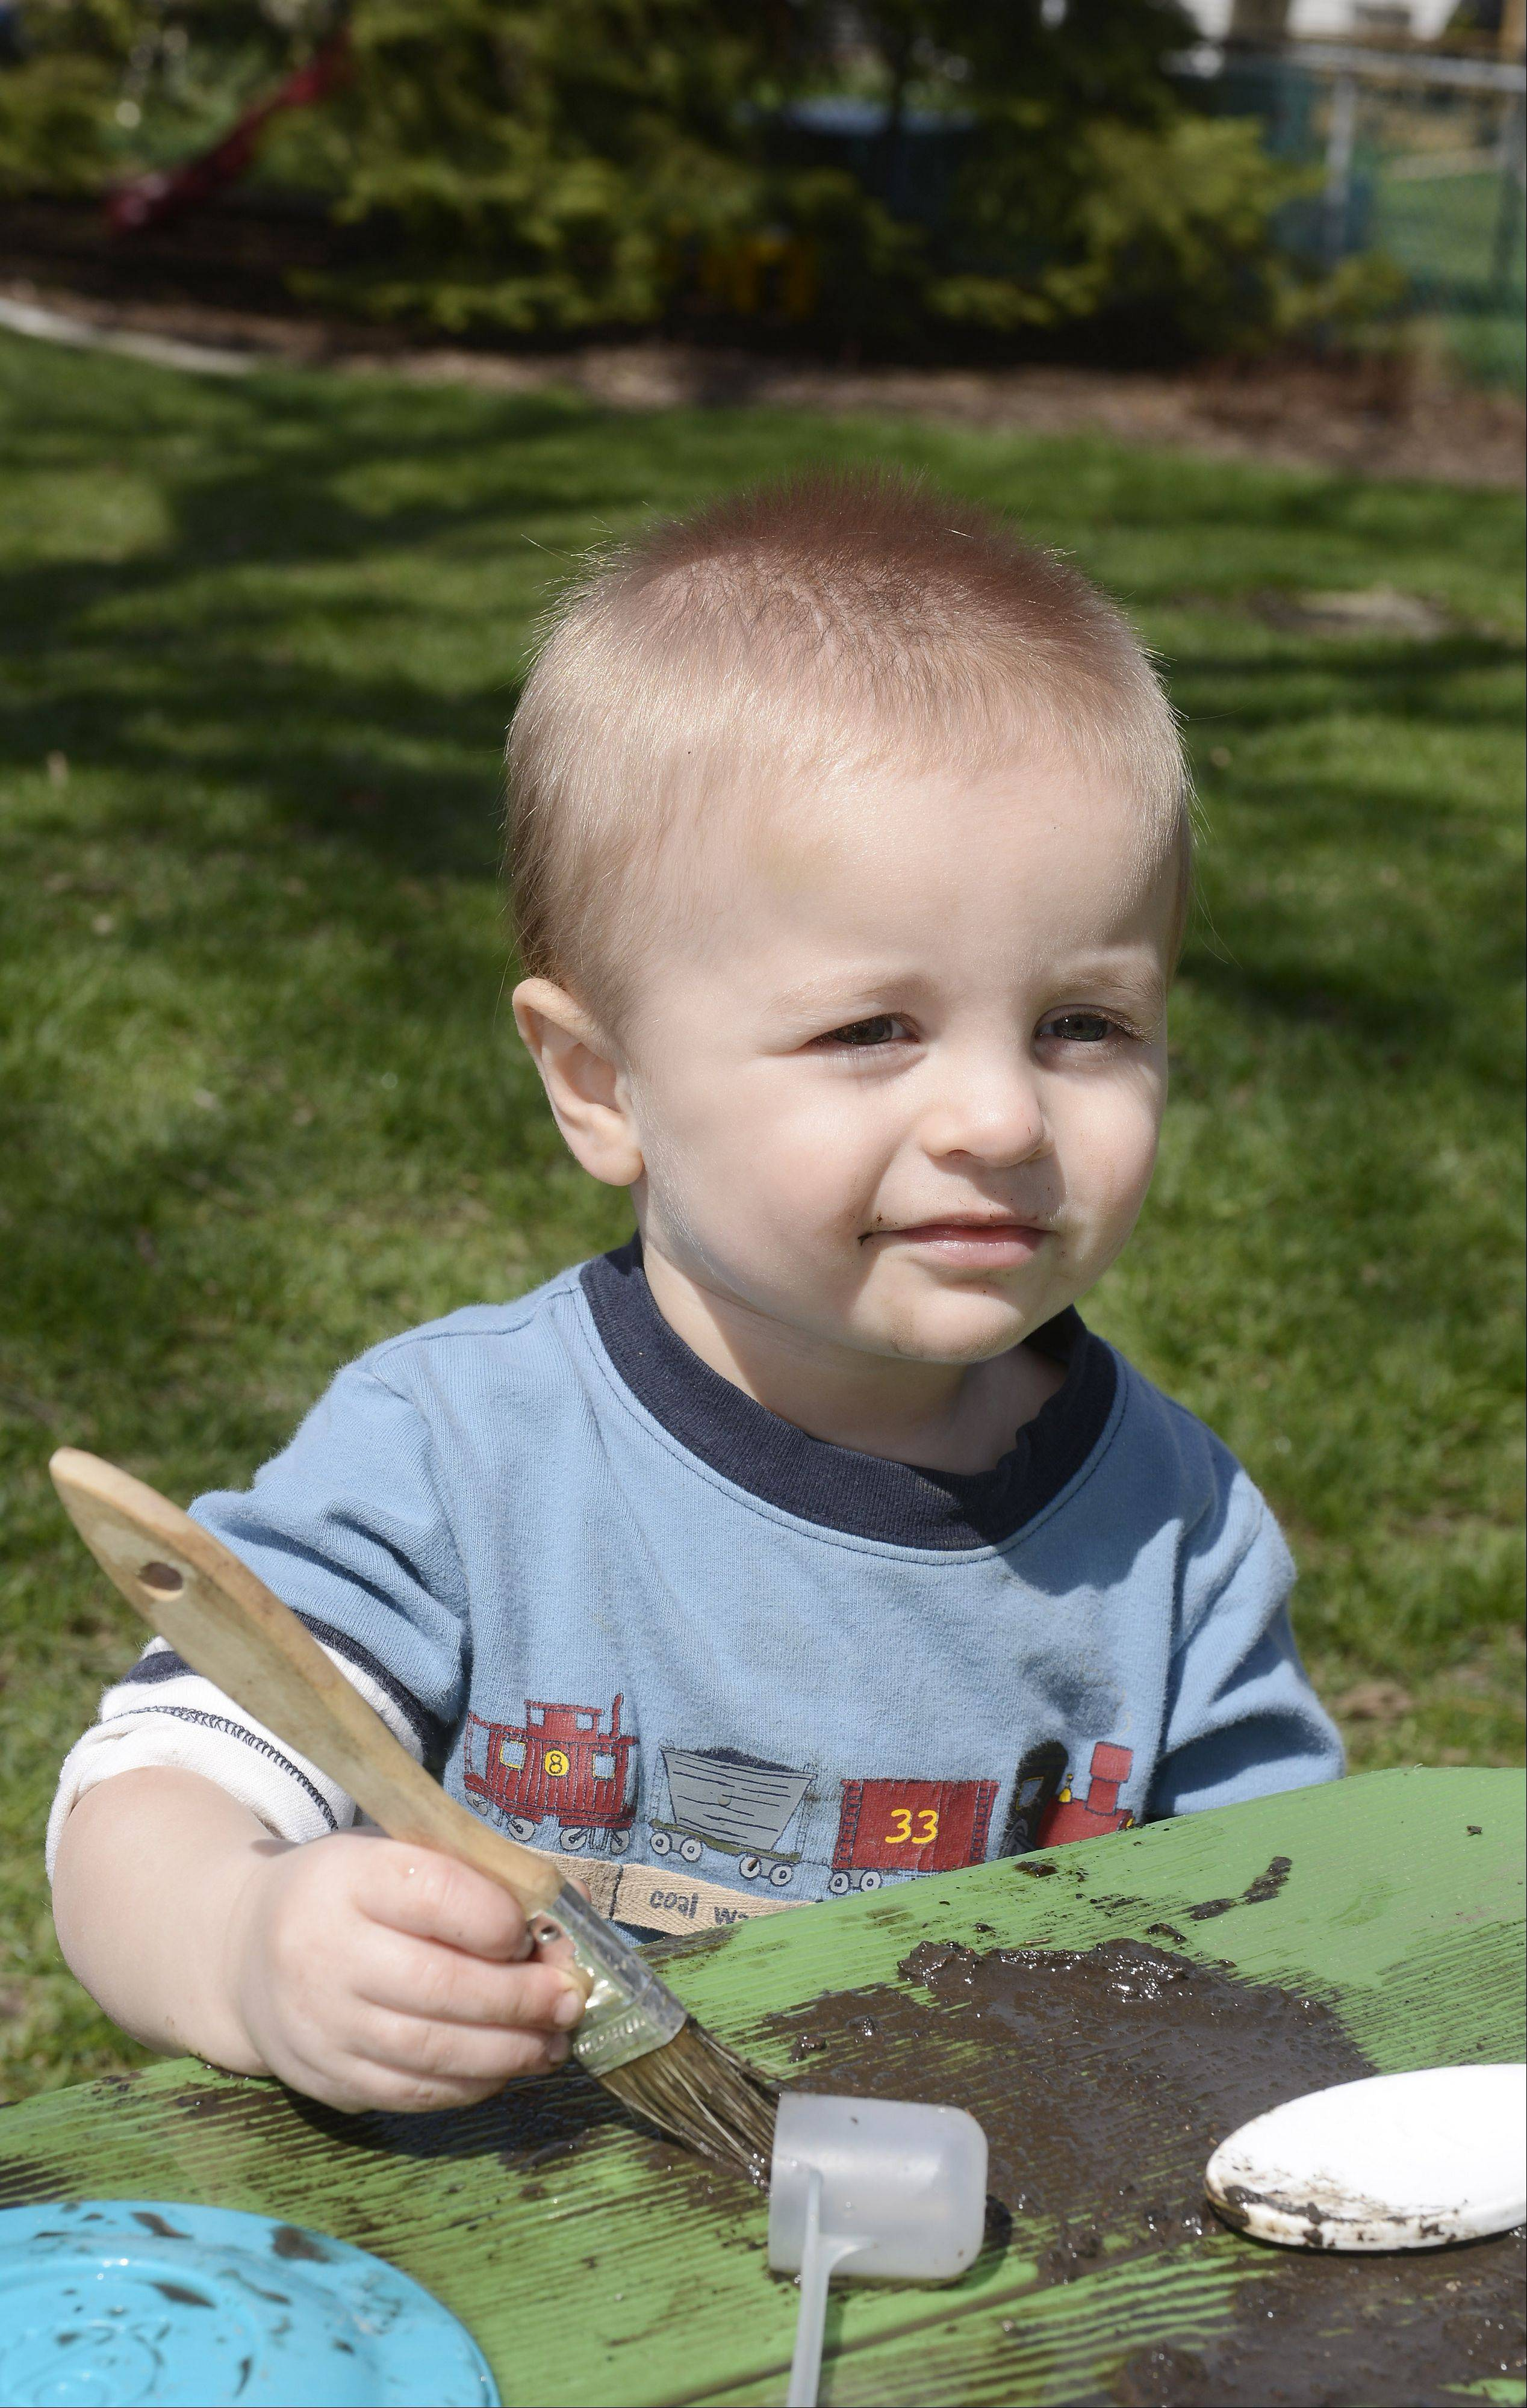 Benjamin Anderson, 1, paints with mud at his parent's Schaumburg home.